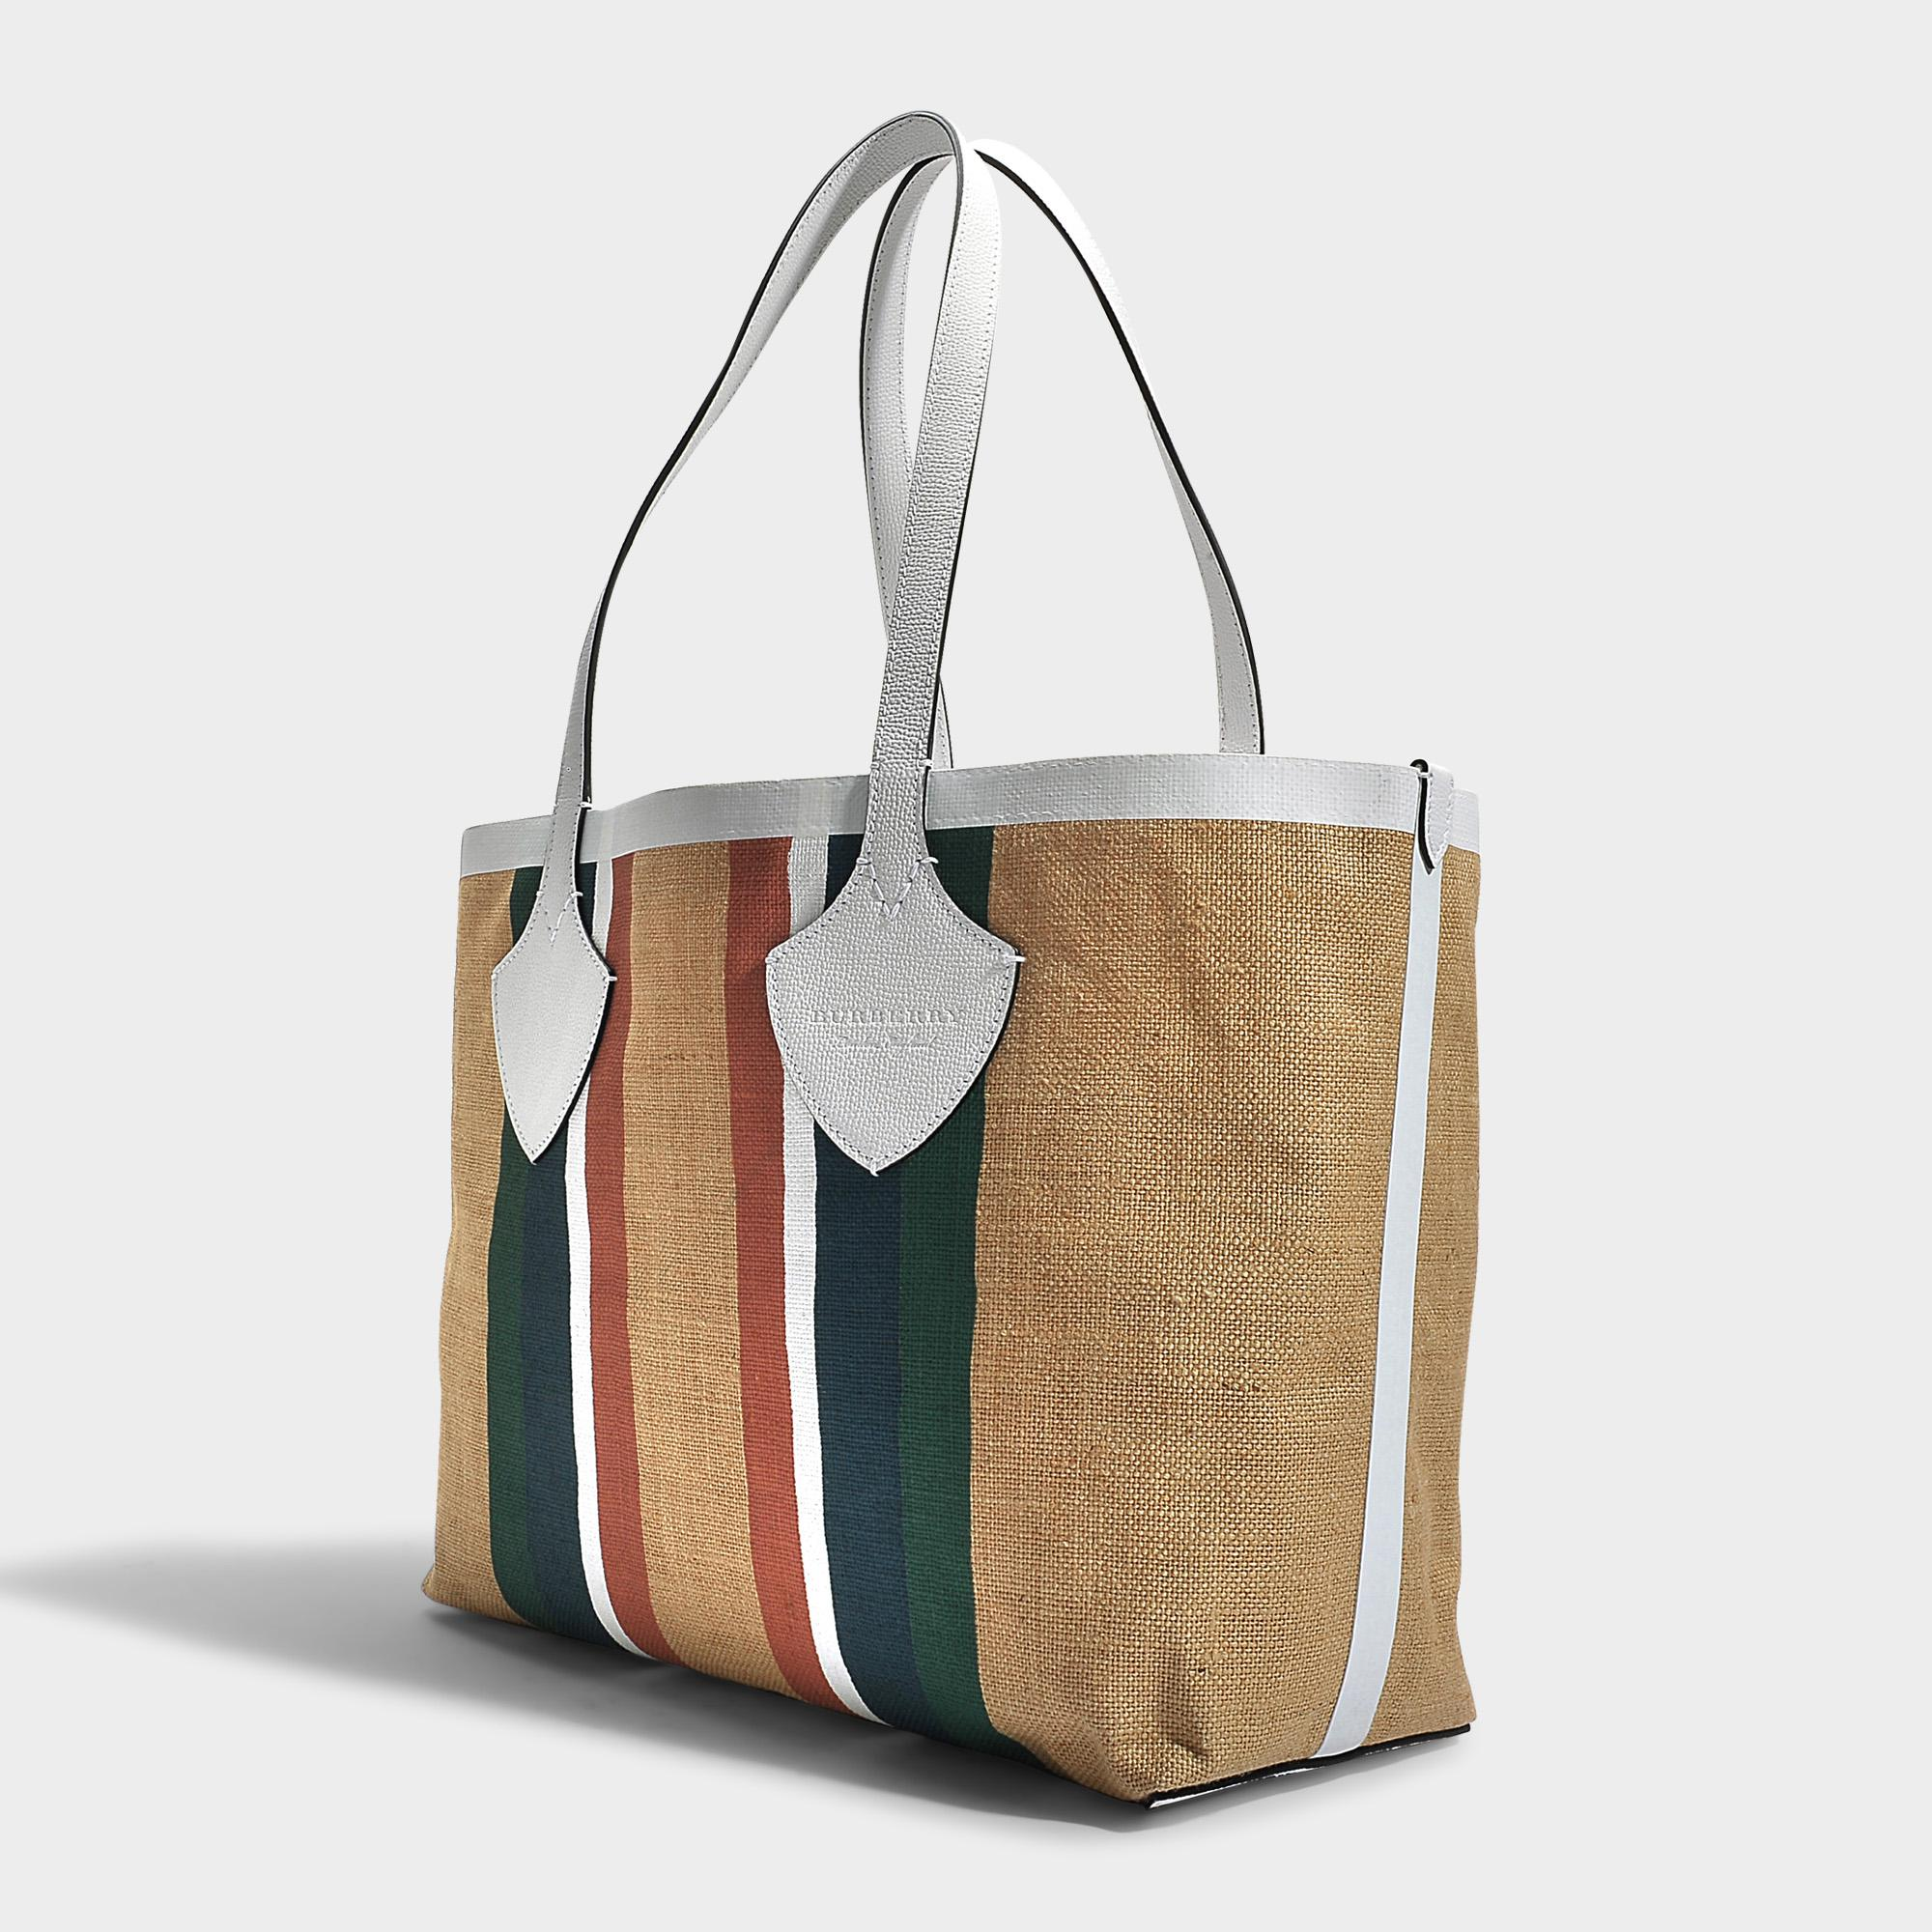 7df43e9440ce Lyst - Burberry The Giant Medium Tote Bag In Chalk White Jute Stripes